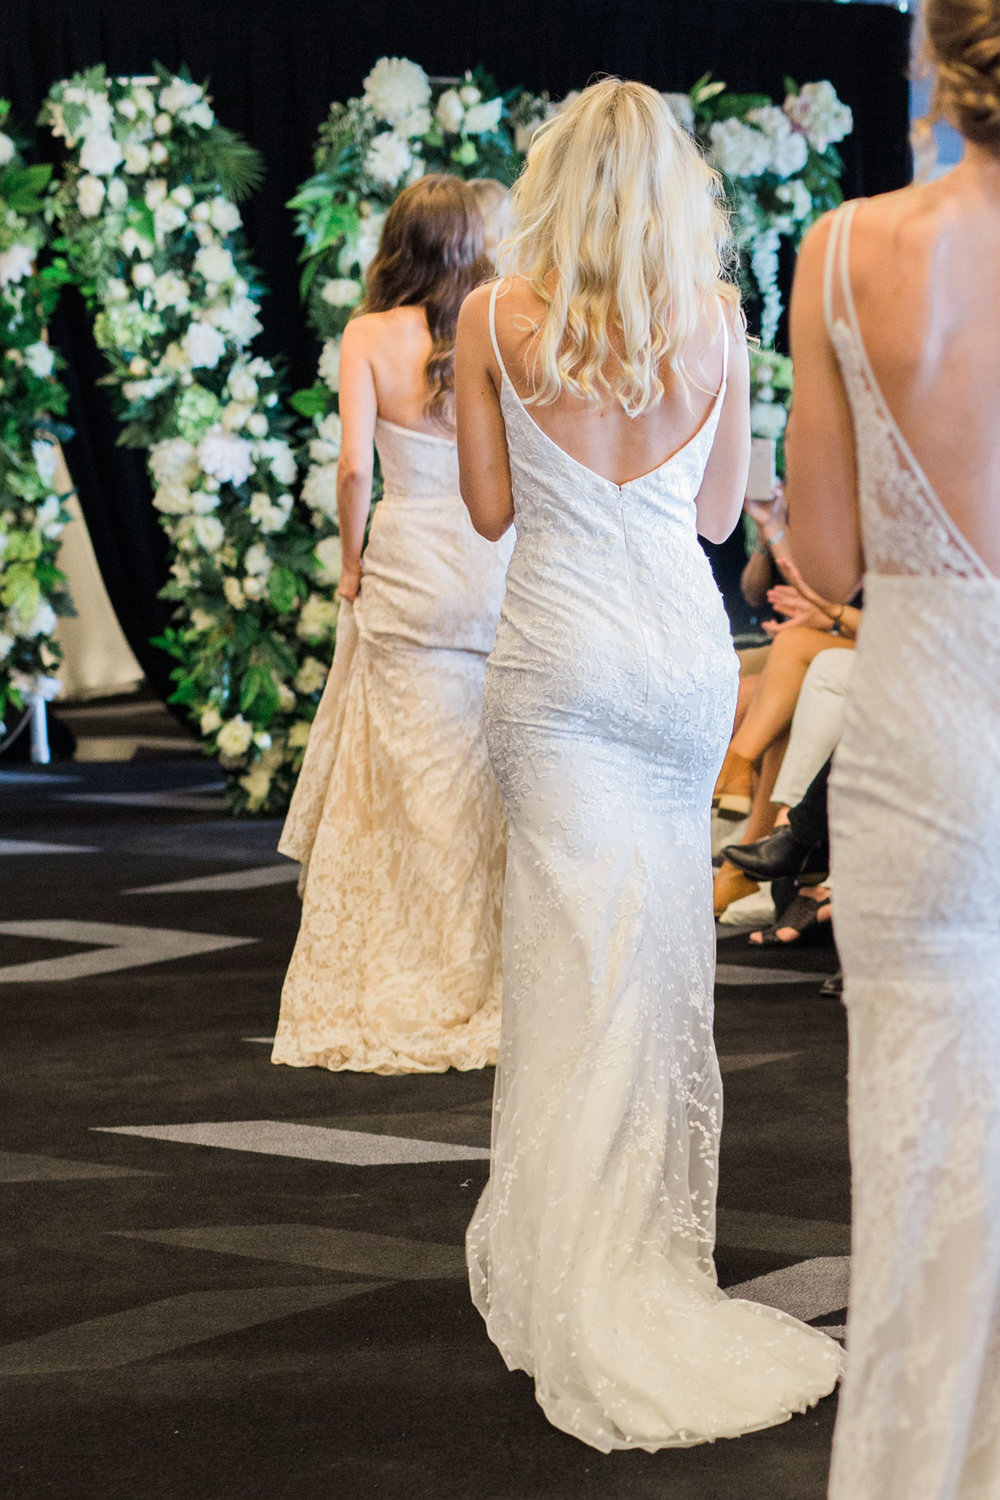 Love-Wedding-Festival-Sydney-Wedding-Gown-Angela-Osagie-42.jpg